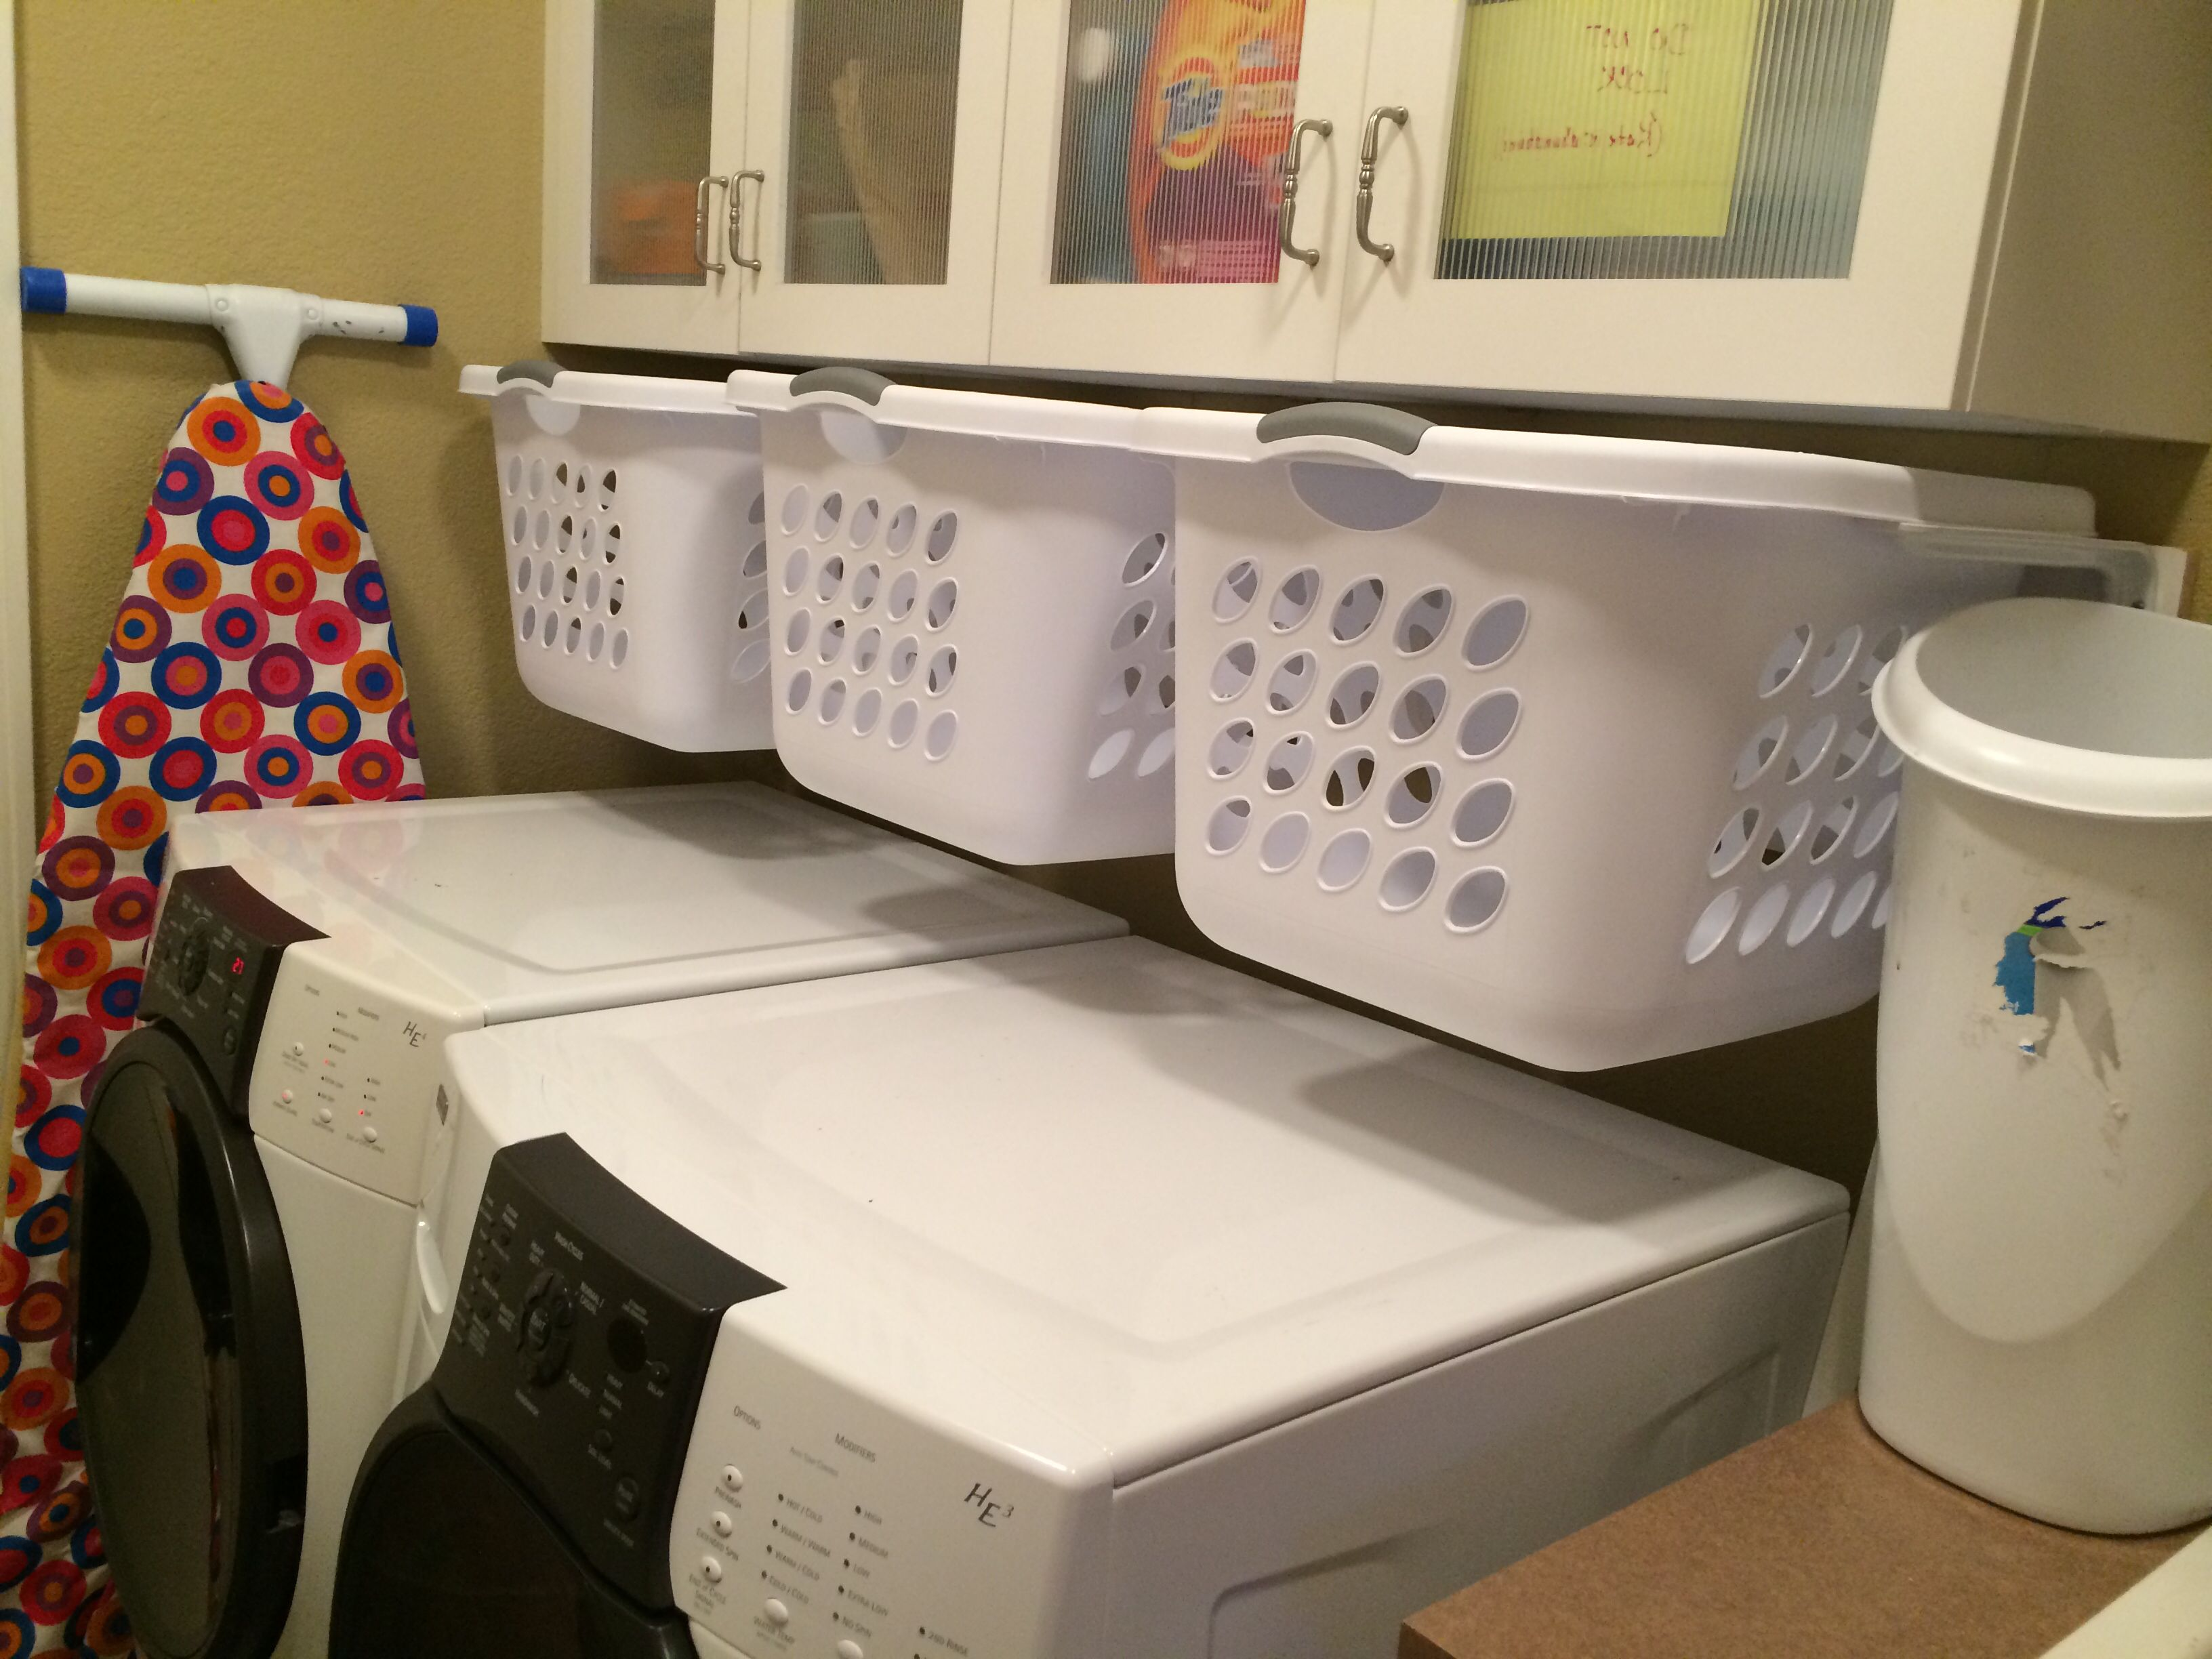 Hanging Slide Out Laundry Baskets For Sorting In A Small Laundry